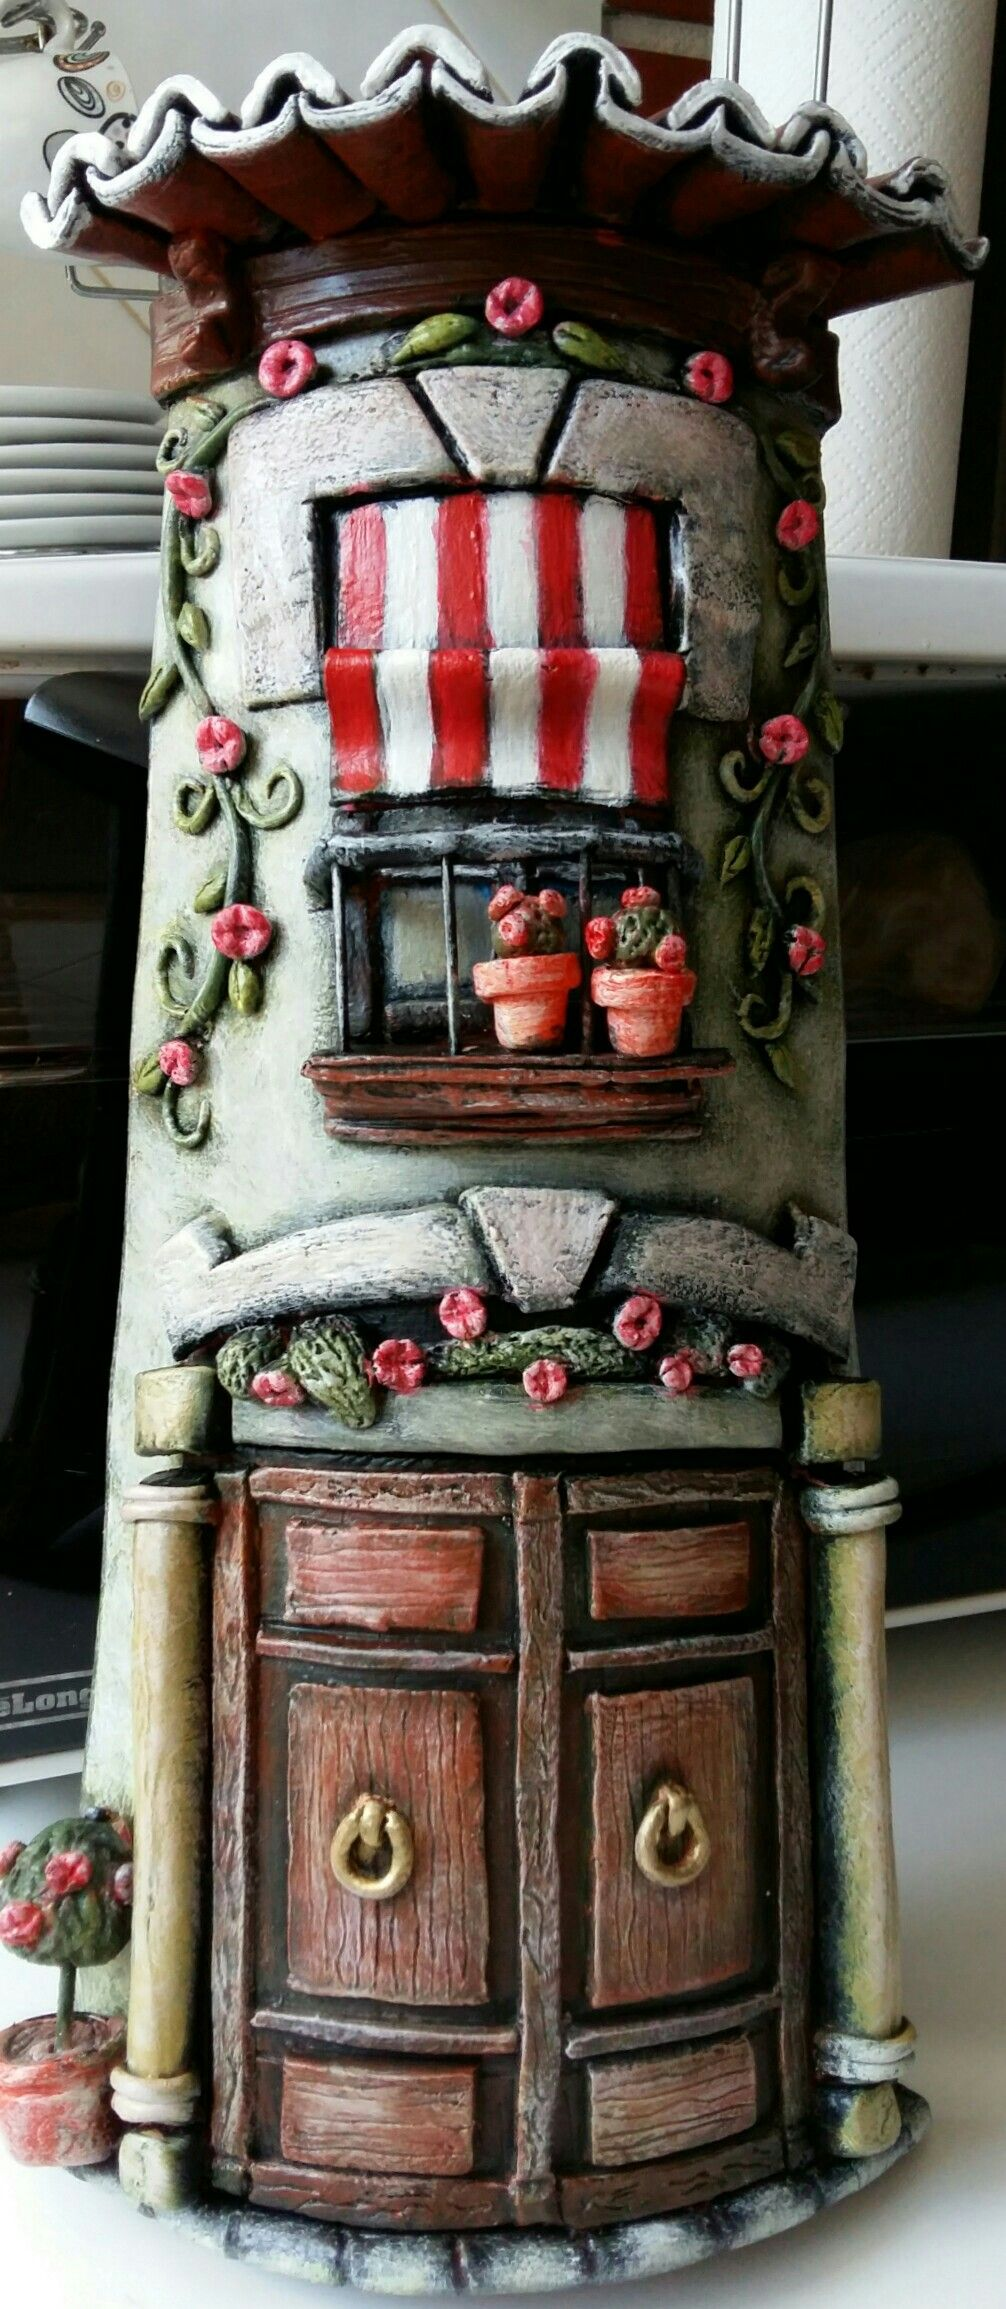 Pin By Noemi Maldonado On Tejas Pinterest Roof Tiles Clay And